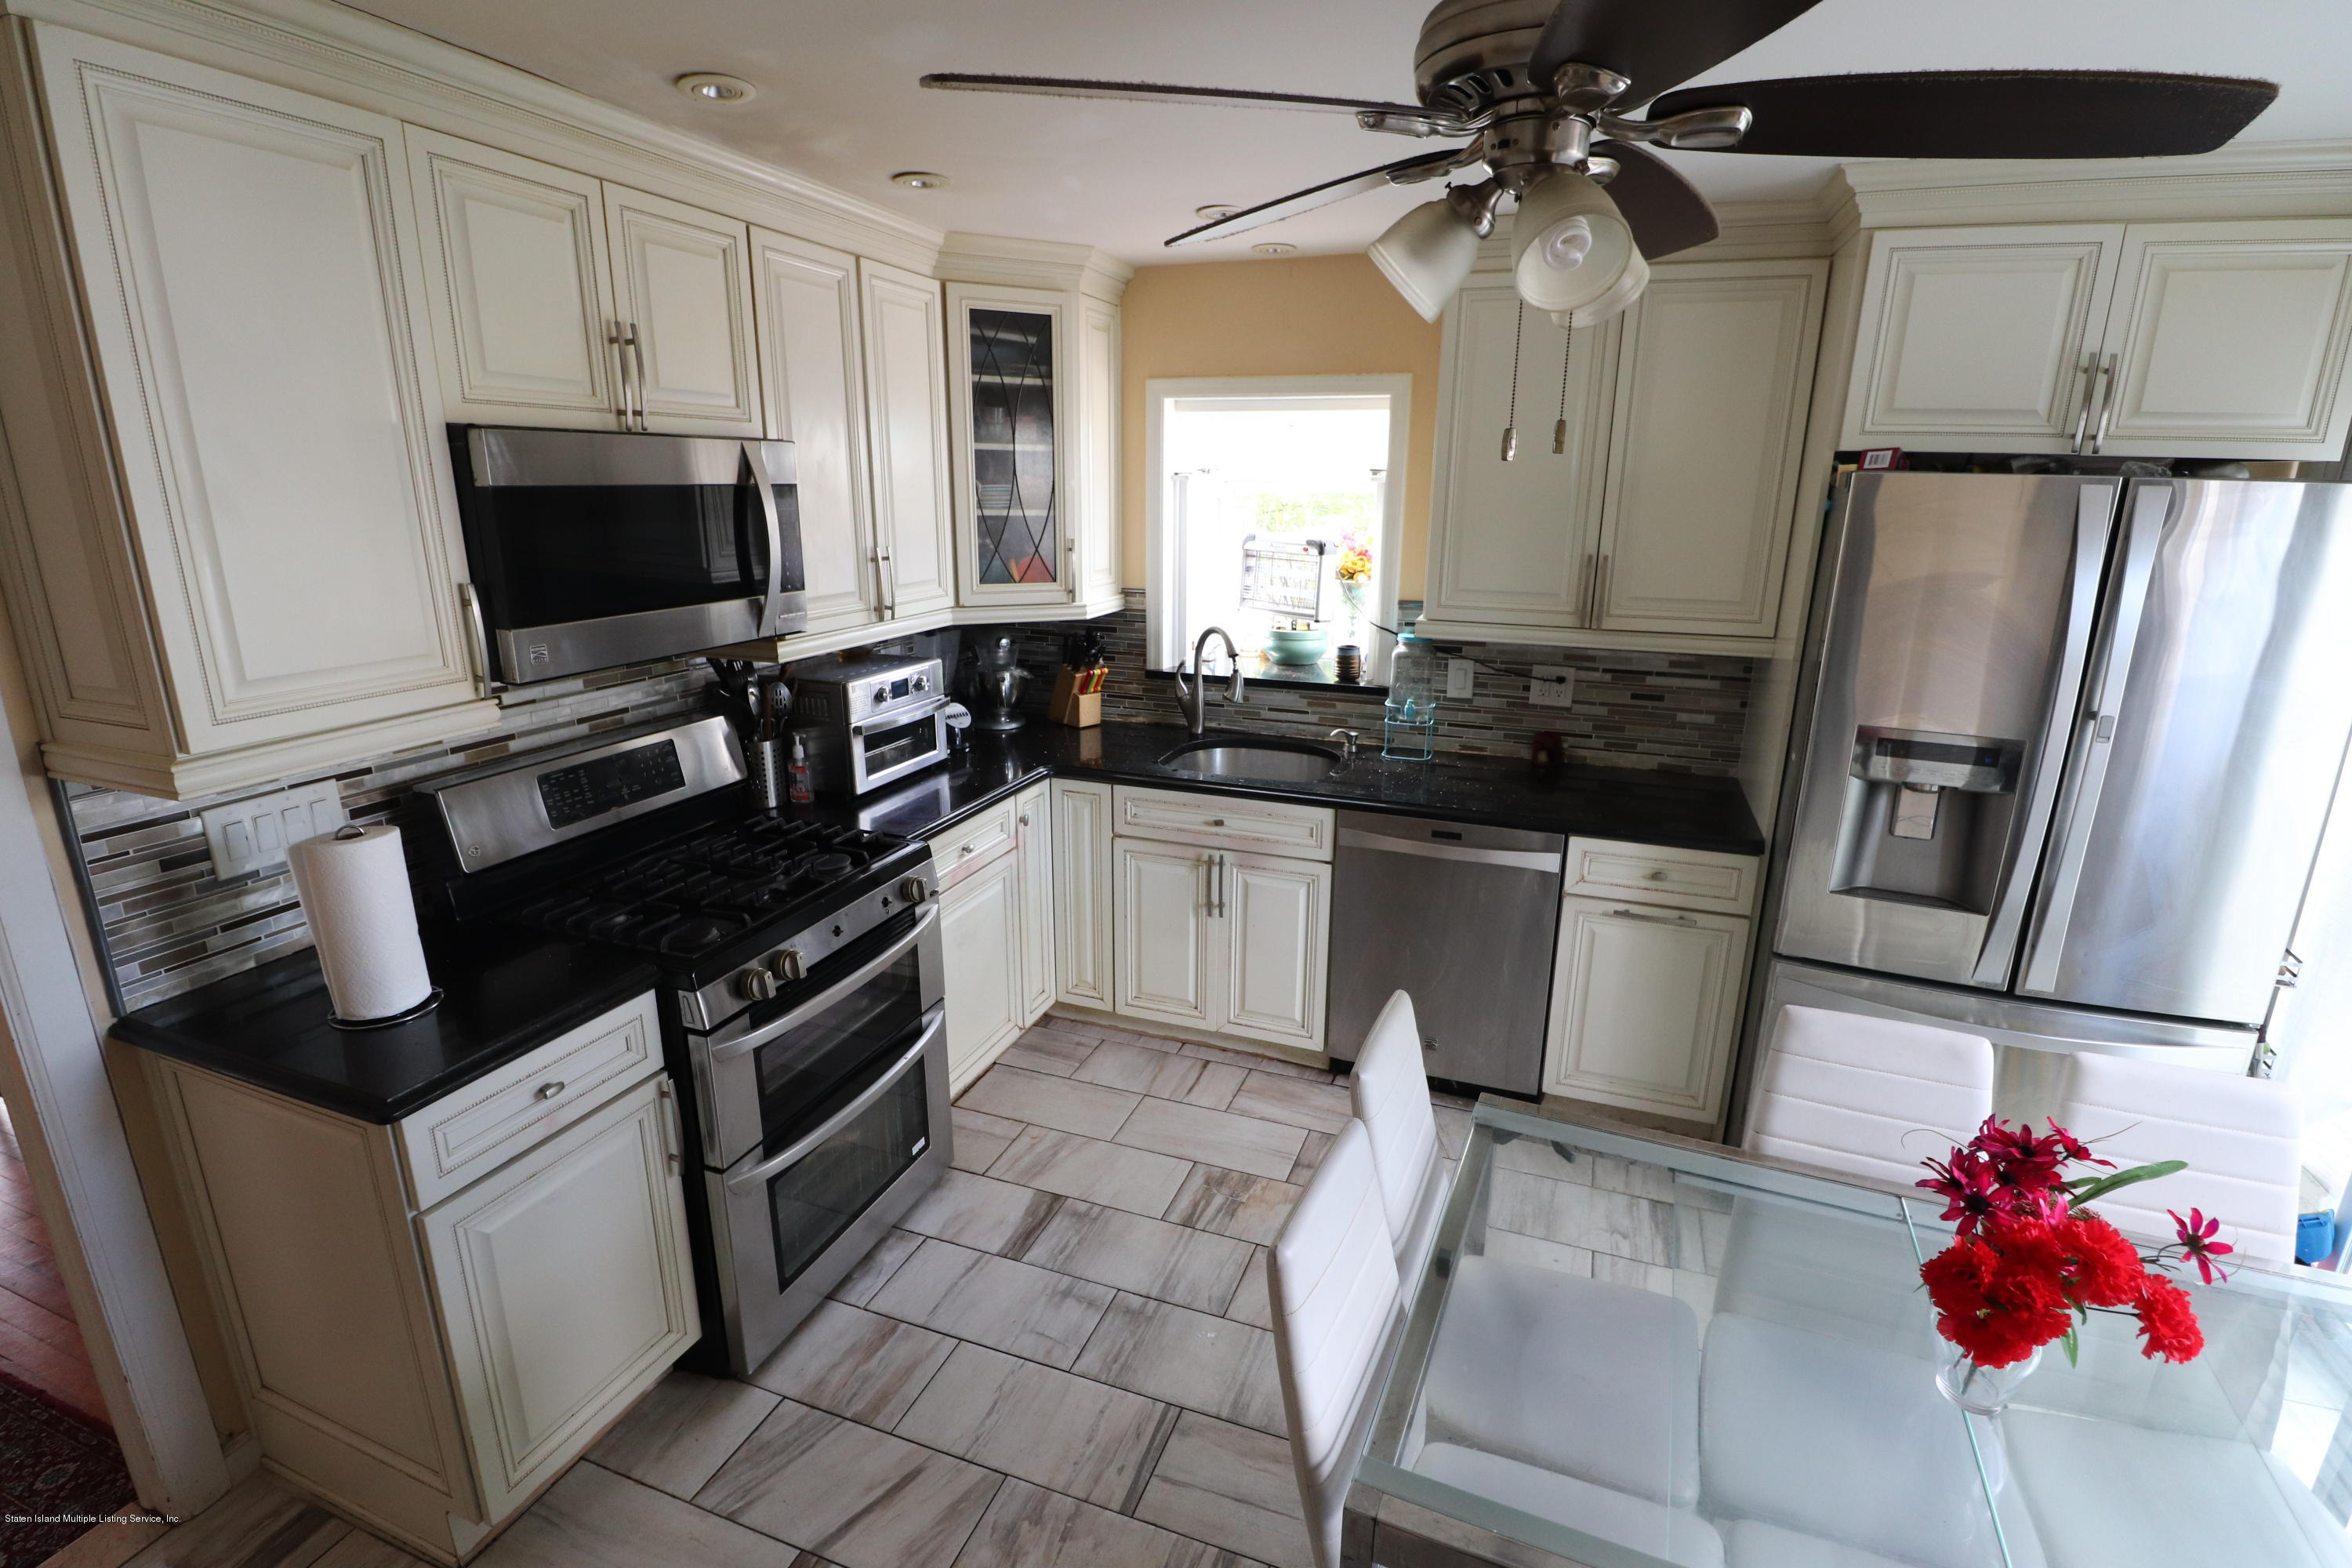 Single Family - Semi-Attached 309 Bedford Avenue  Staten Island, NY 10306, MLS-1140140-5